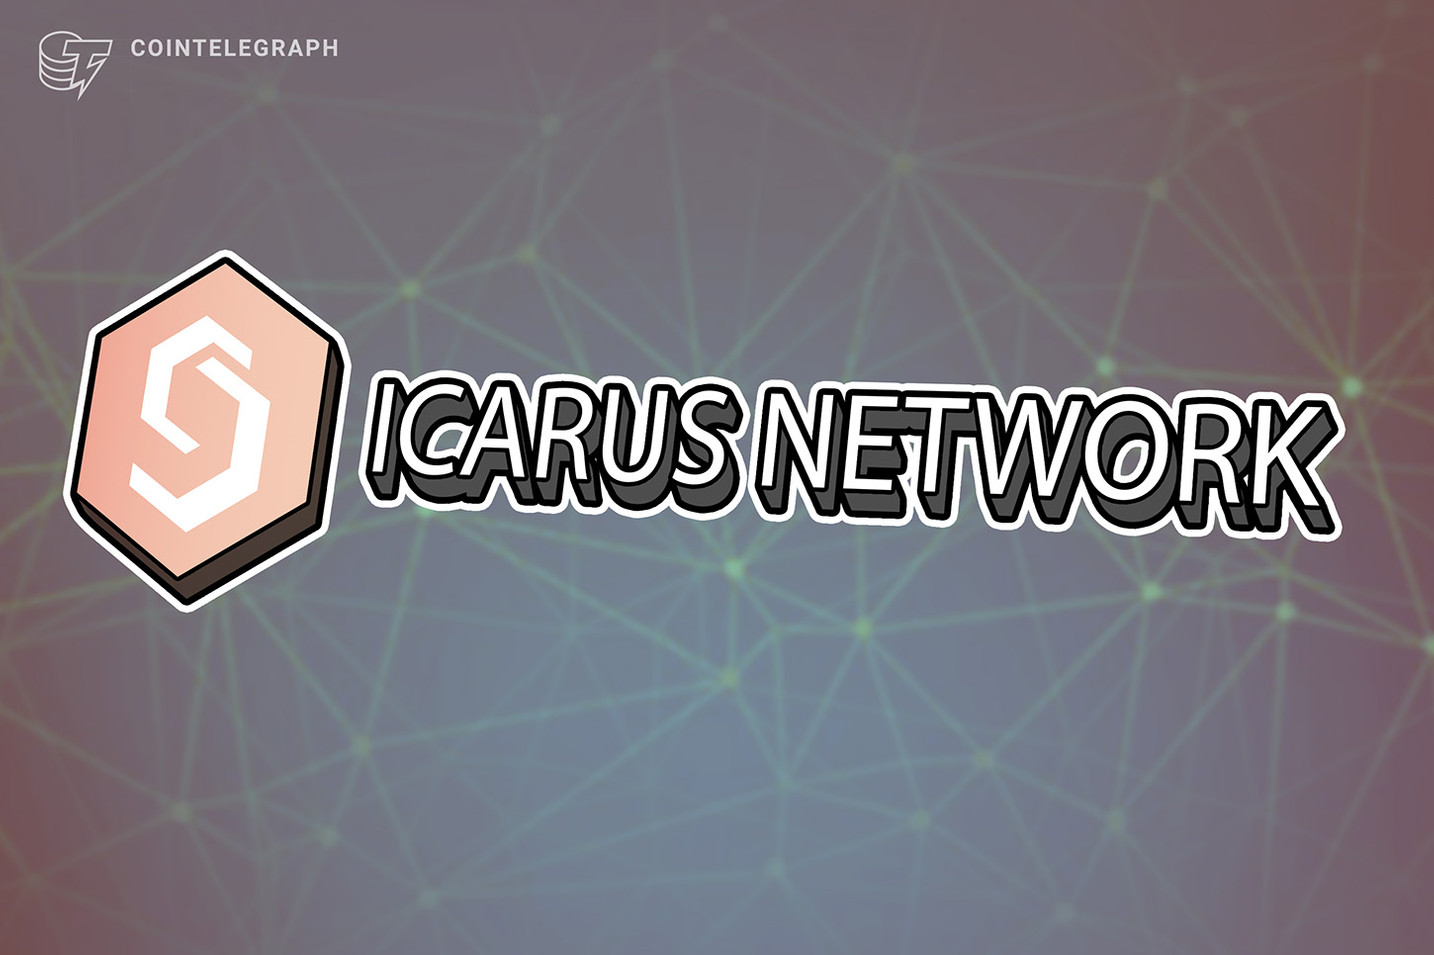 Icarus Network aims to provide a data-focused shared ledger protocol